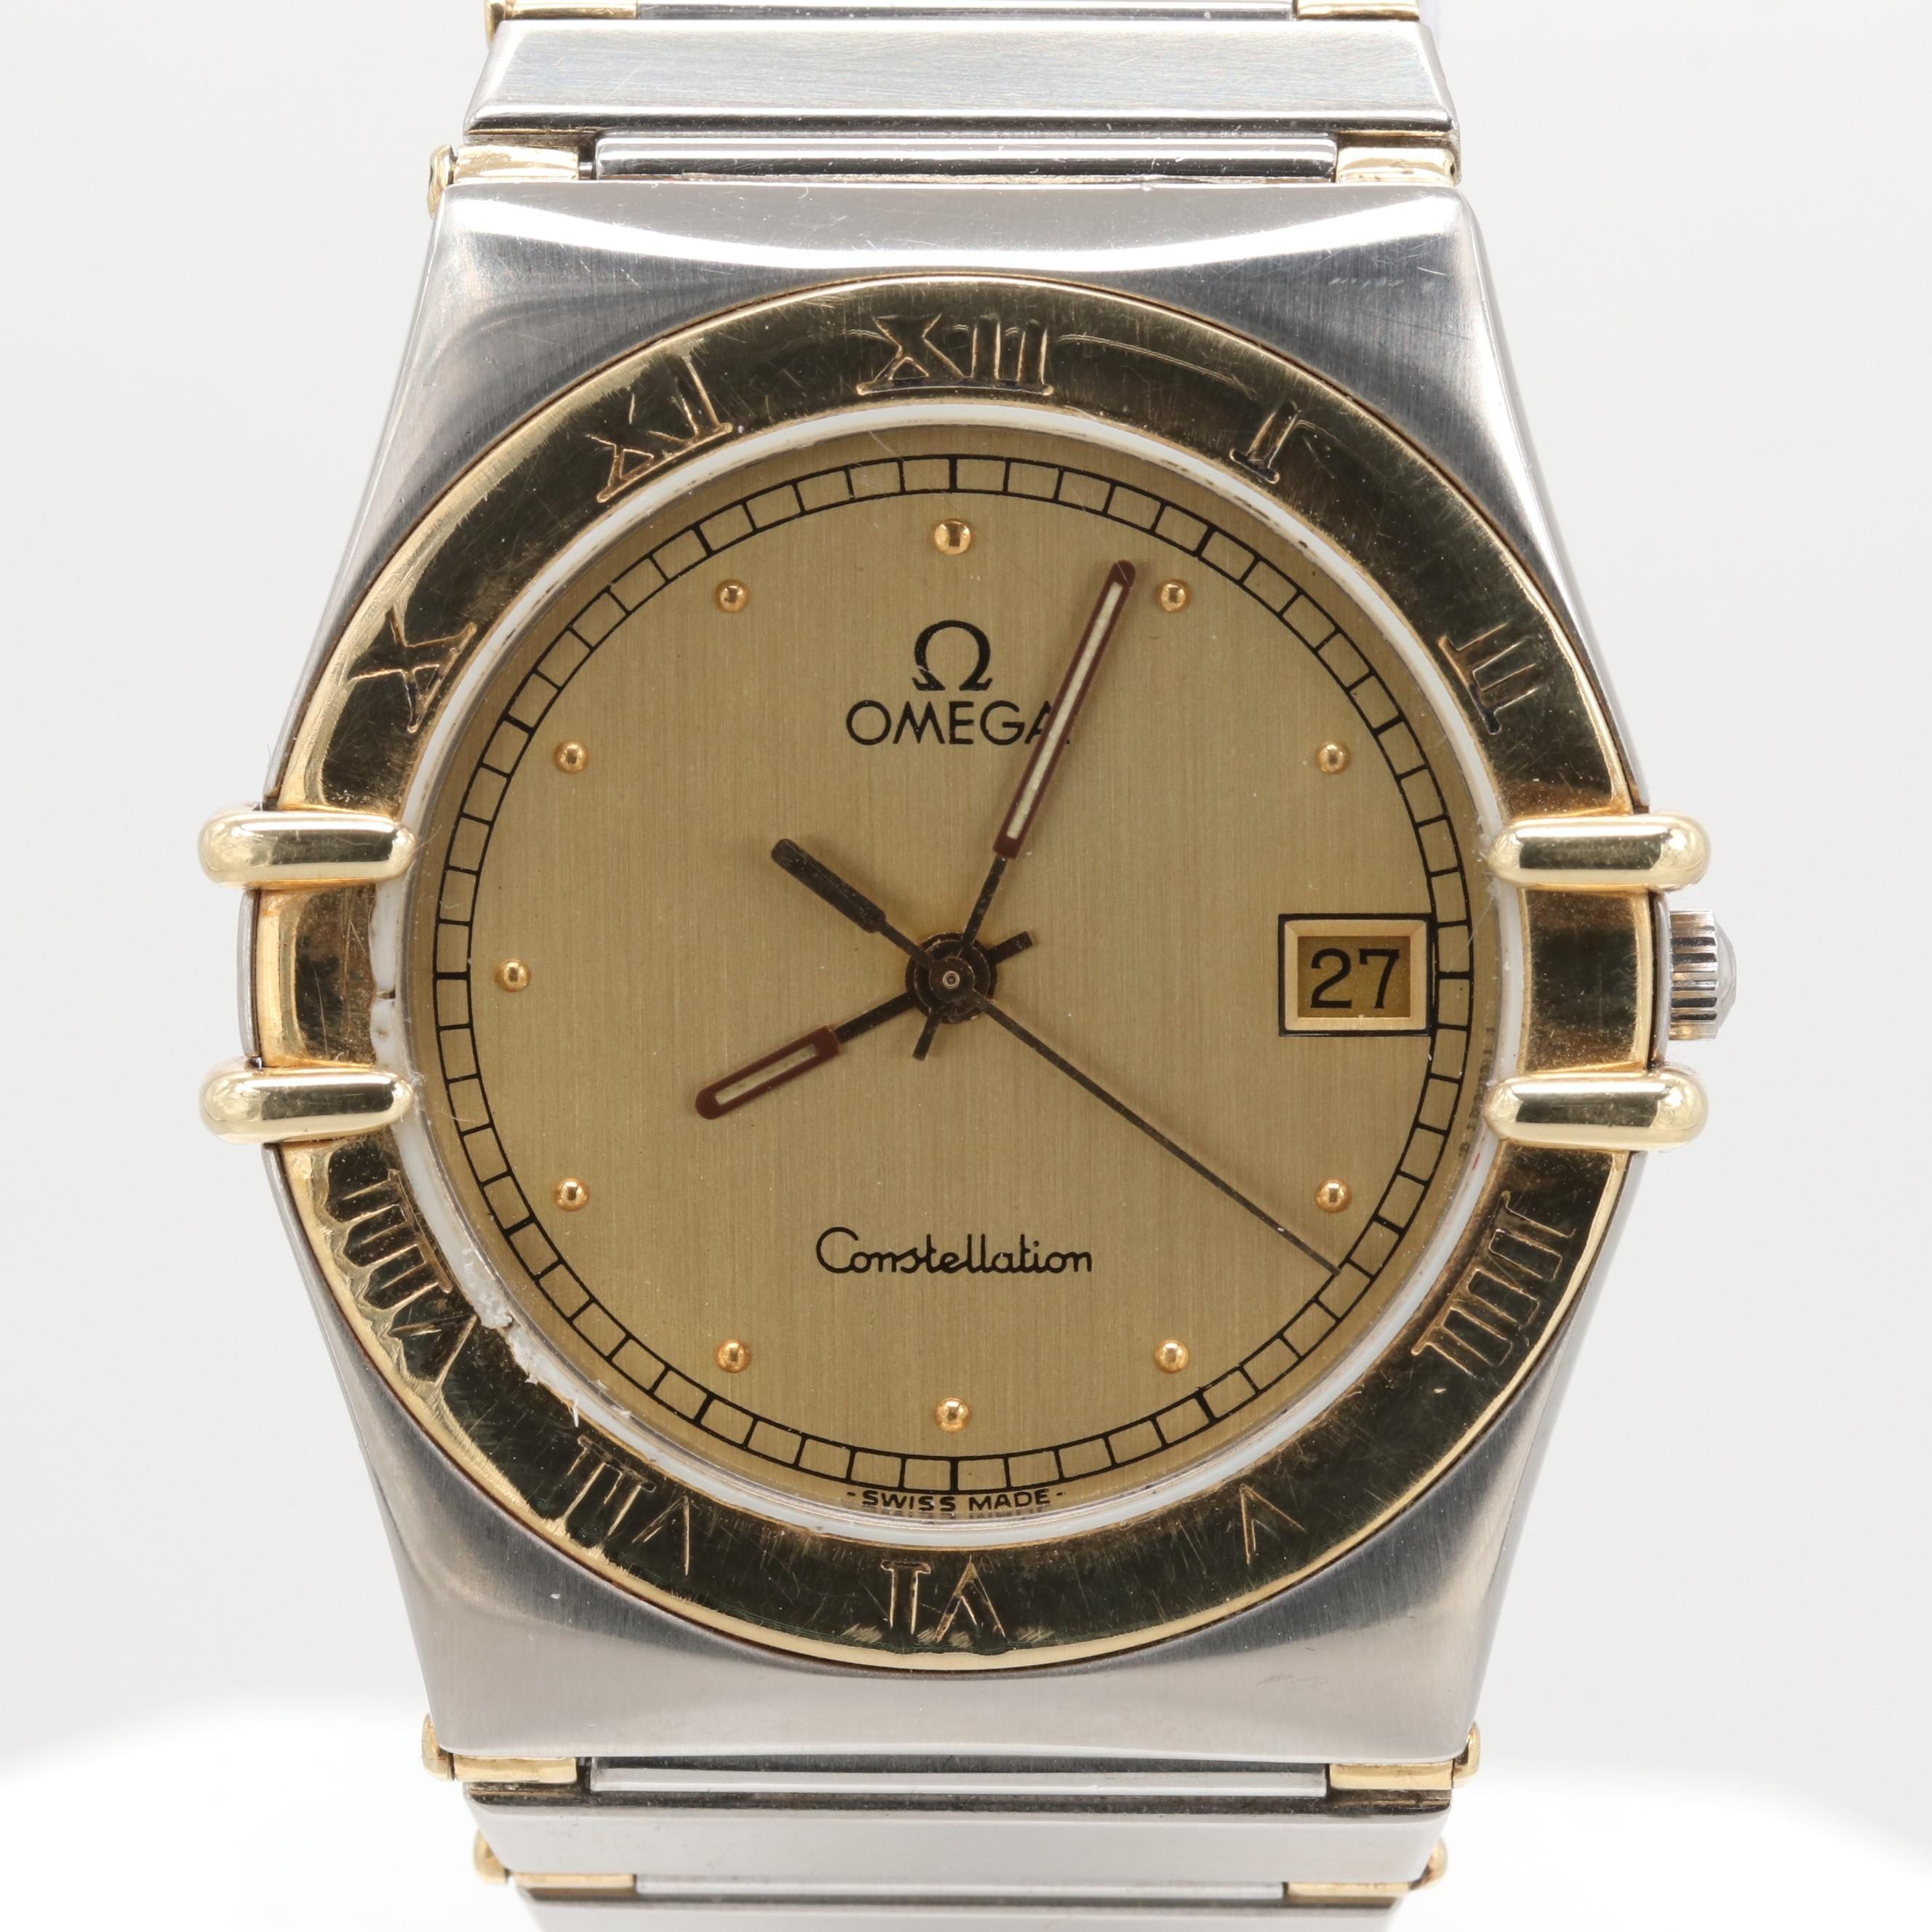 Omega Constellation Stainless Steel and 18K Yellow Gold Wristwatch